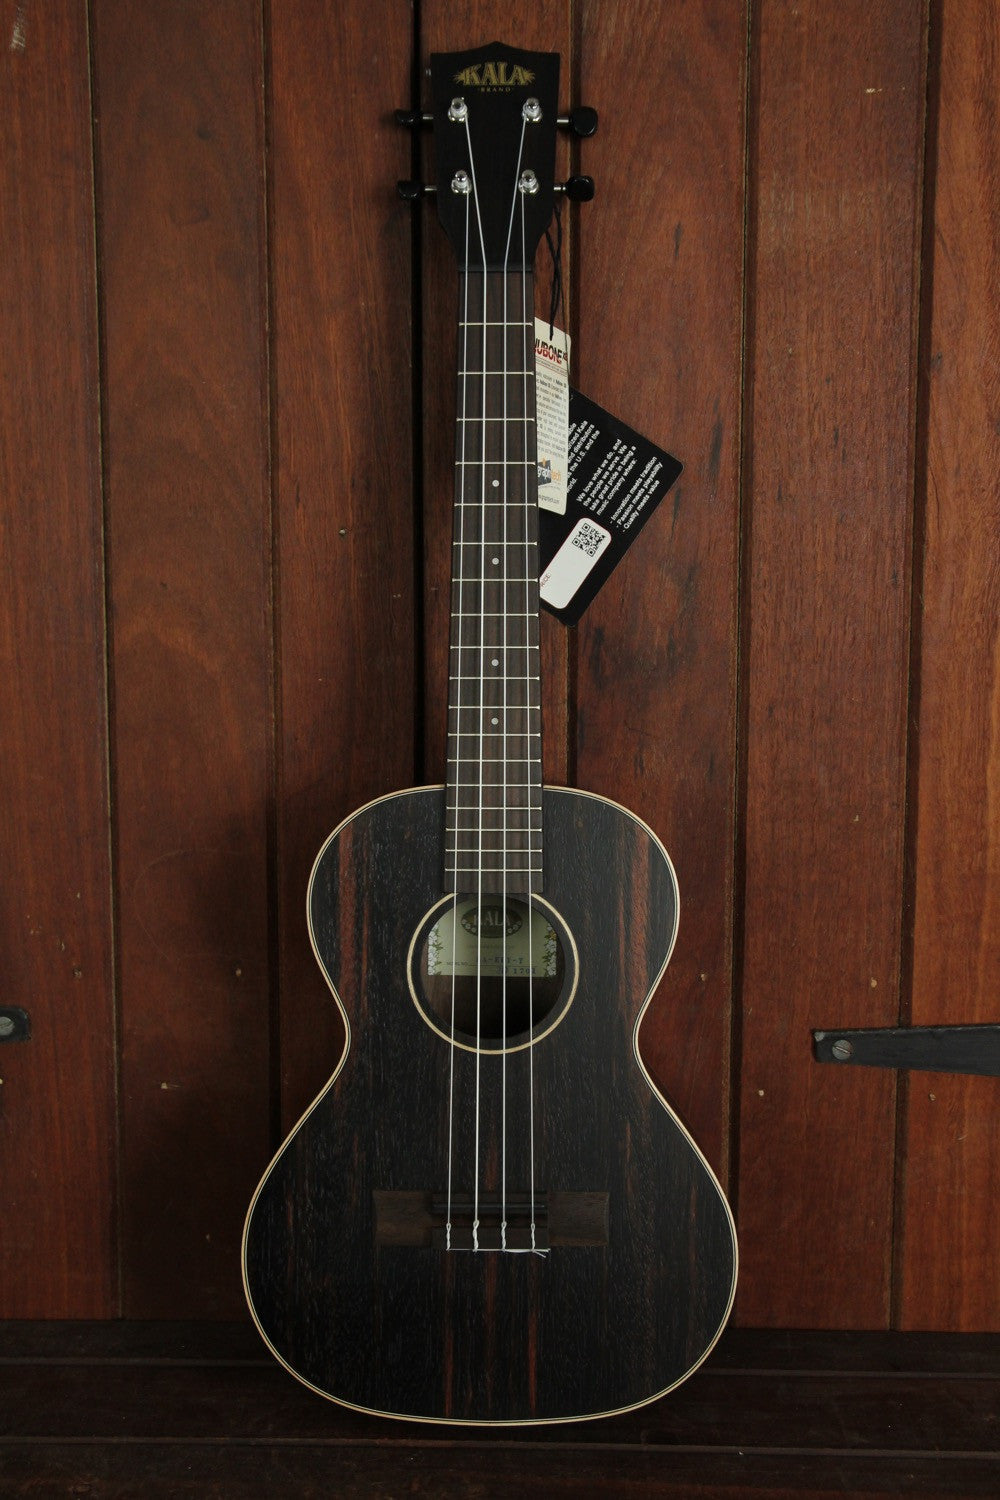 *NEW ARRIVAL* Kala KA-EBY-T Ebony Tenor Ukulele Natural - The Rock Inn